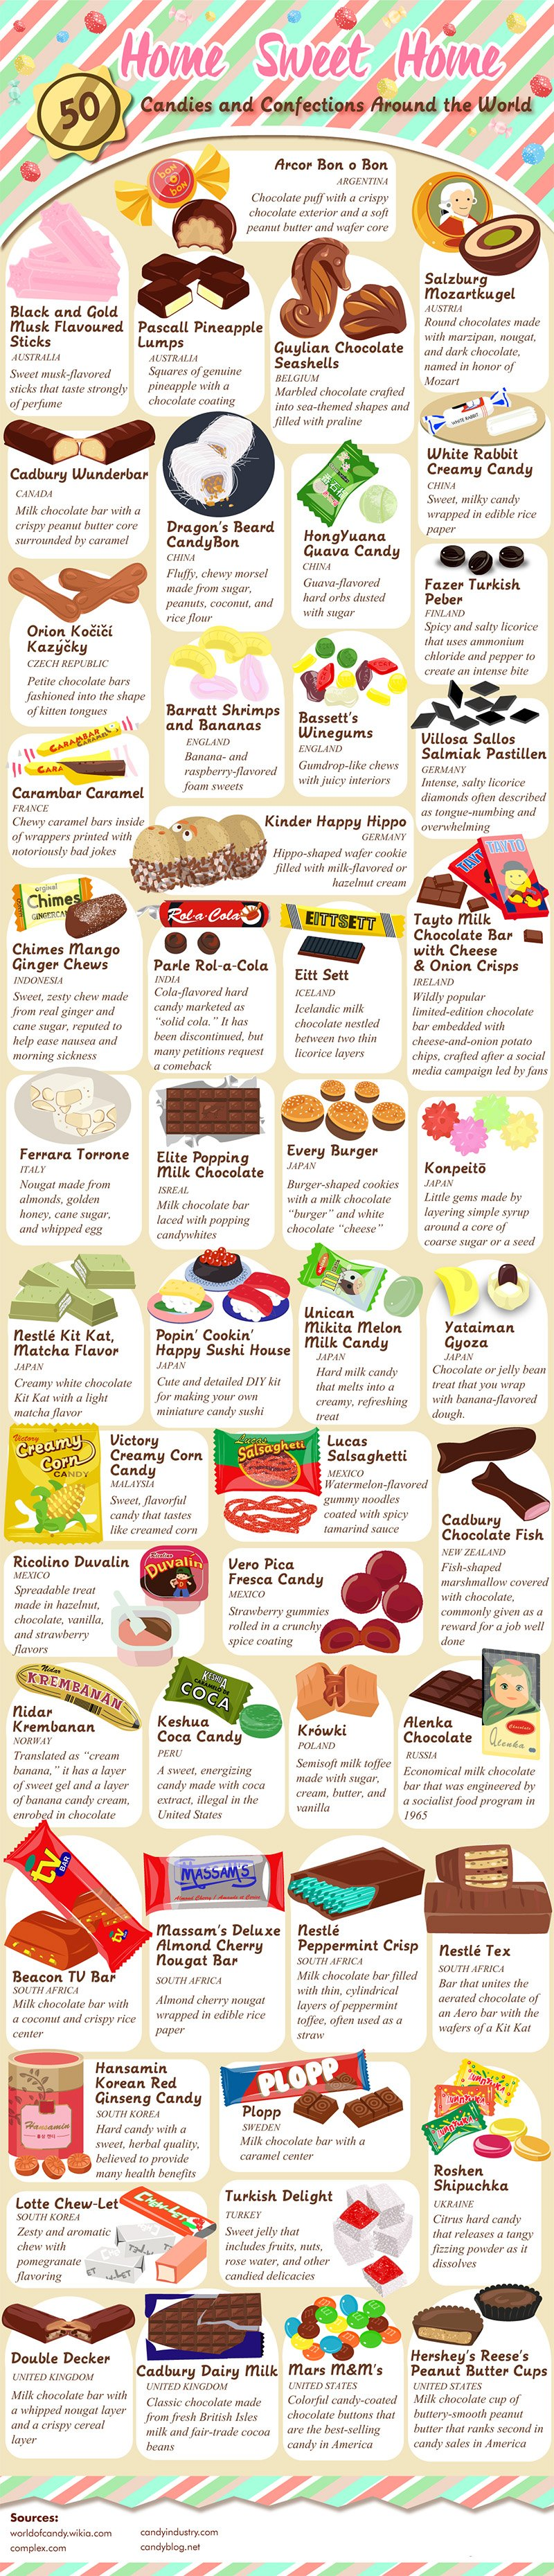 88 Candies and Confections Around the World